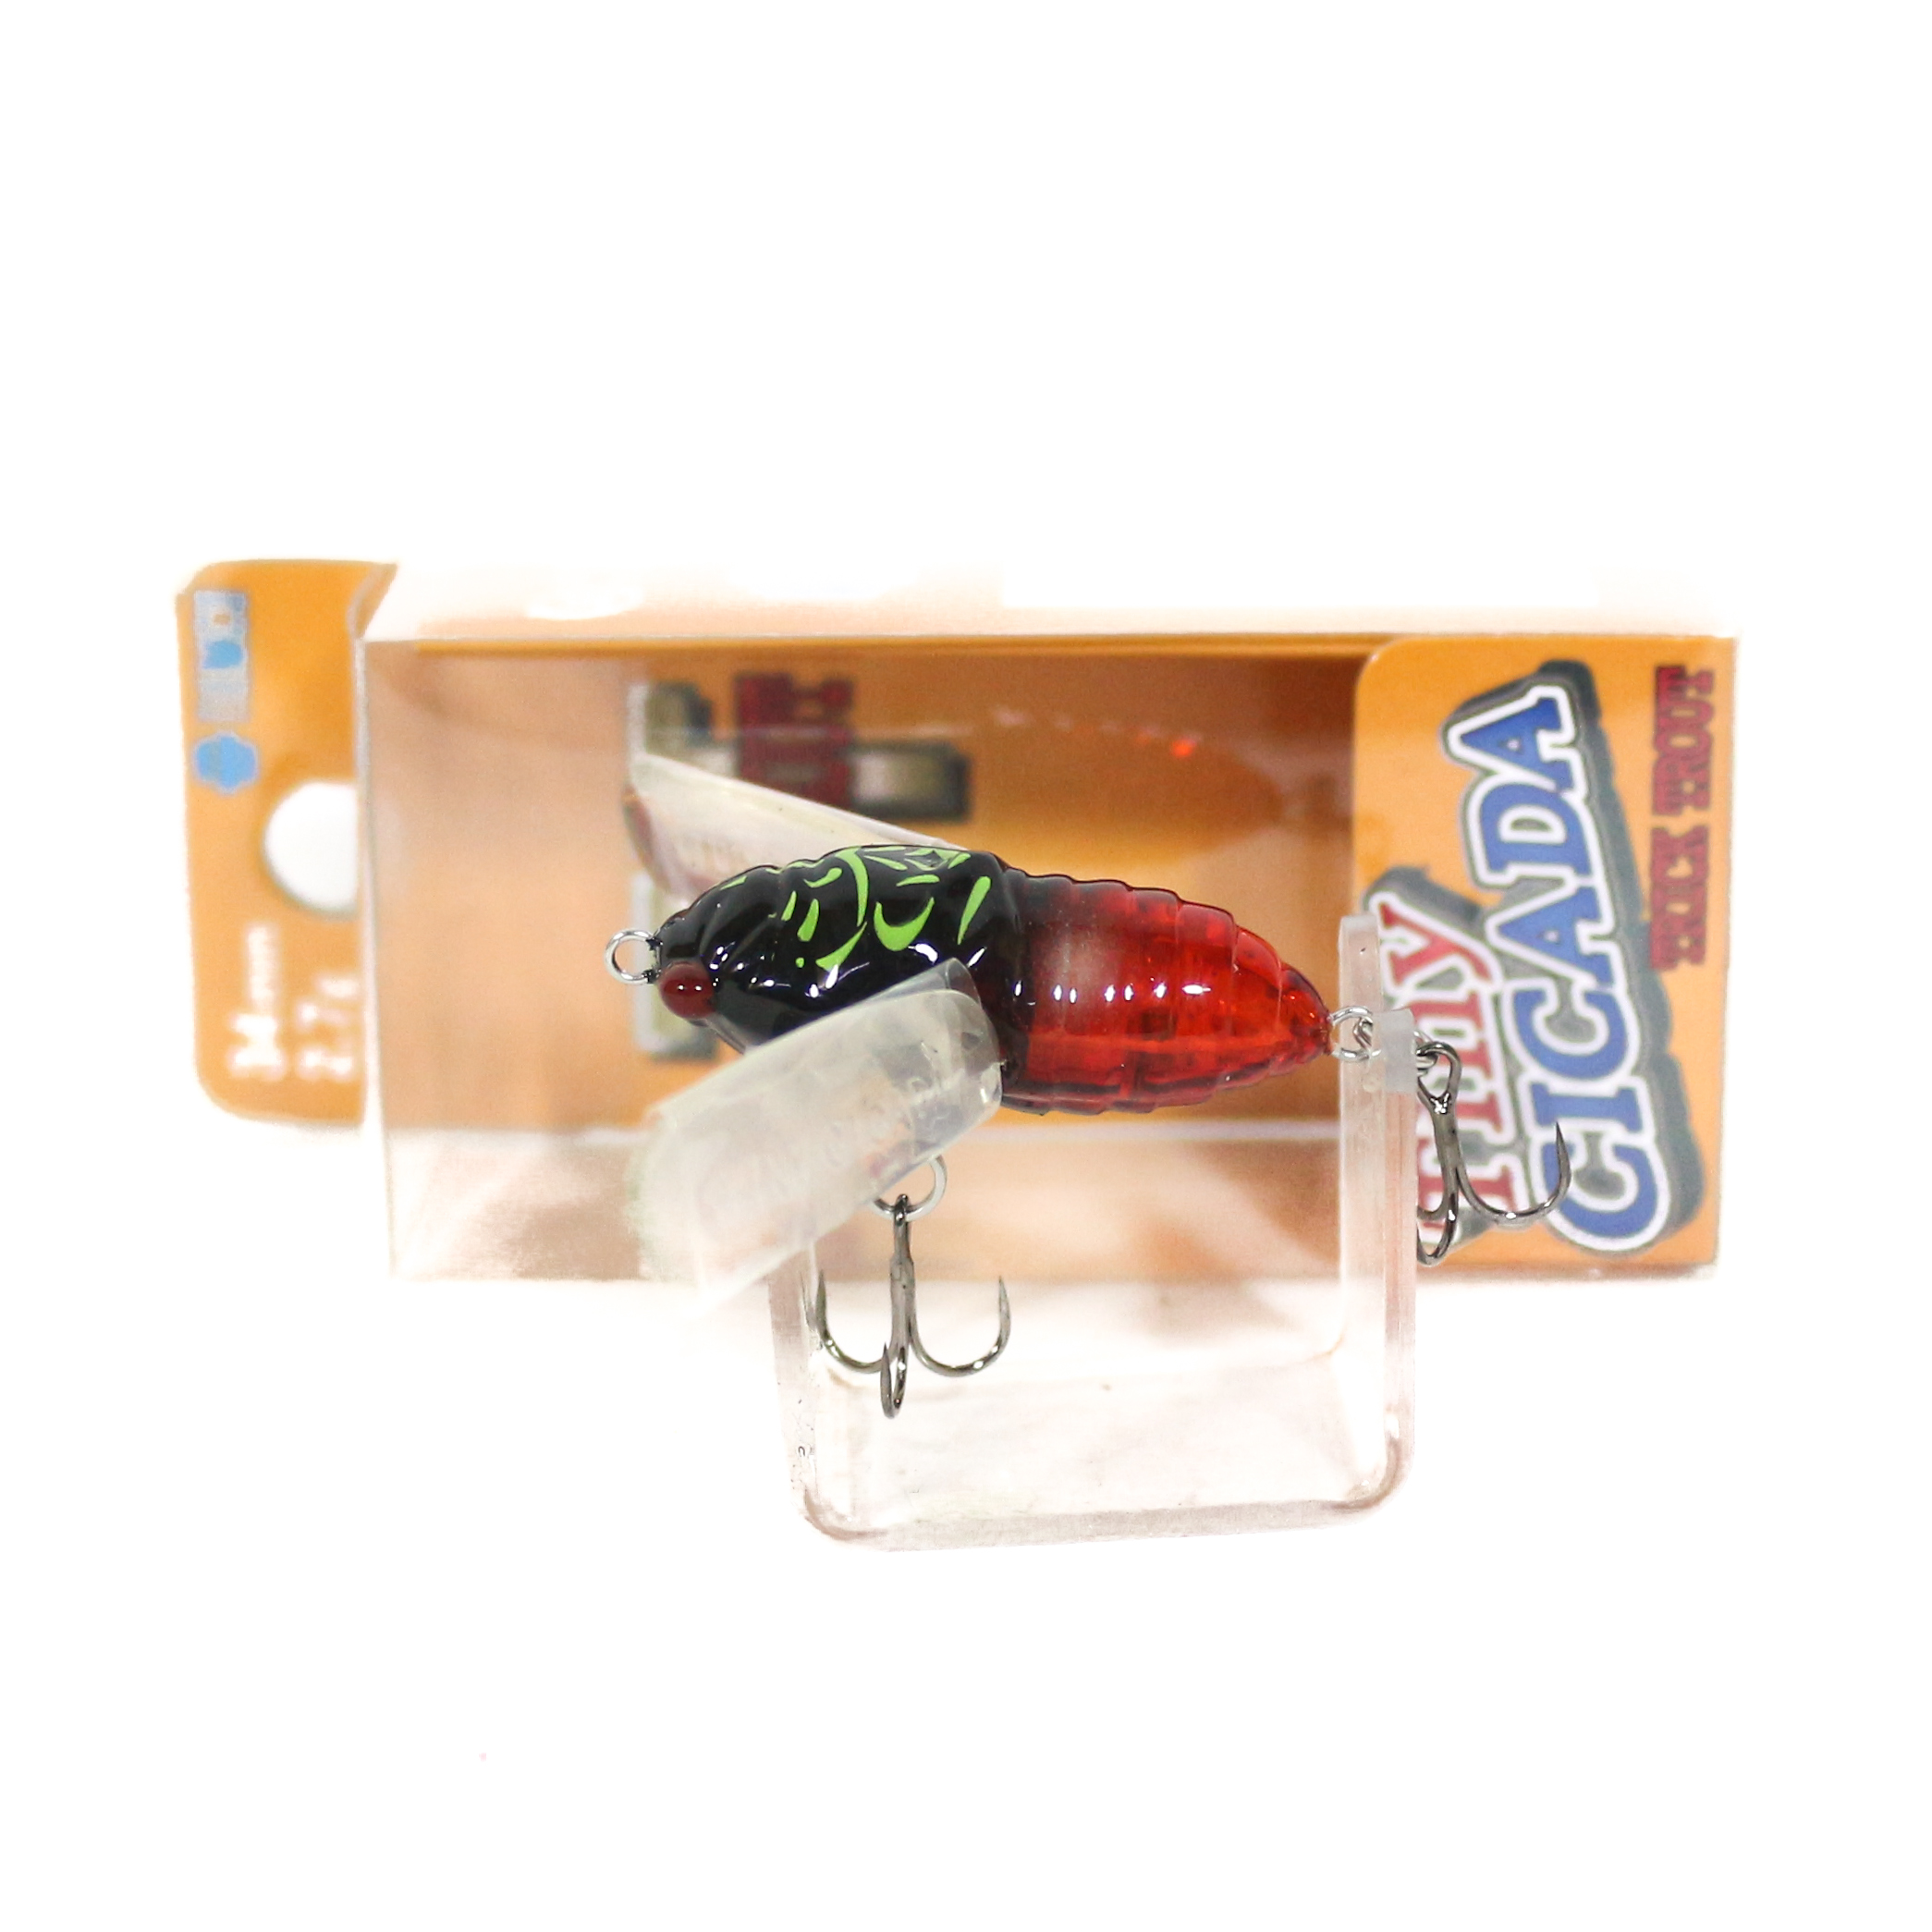 Tiemco Cicada Tiny Trick Trout Floating Lure TTTC-122 (6023)